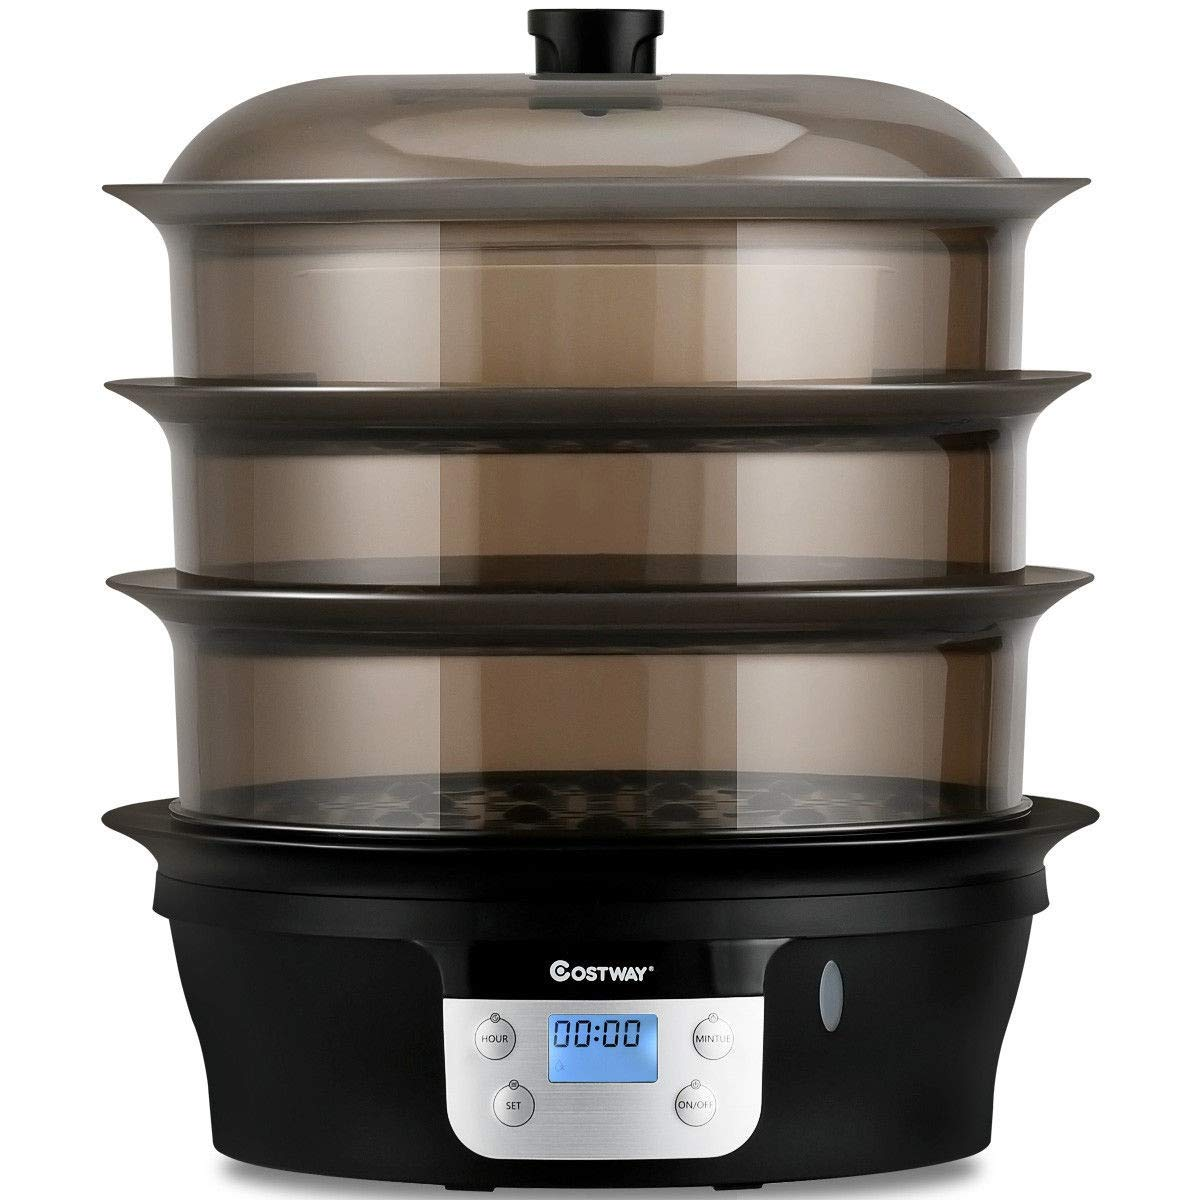 Black See-Through 1000W Boiler 3 Bed Independent Rack Contain 7 QT Easy Operated Control Panel Functions Automatic 2-Hour Timer Cycle Completed Automatic Shut-off Dynamic Food Steamer Pot